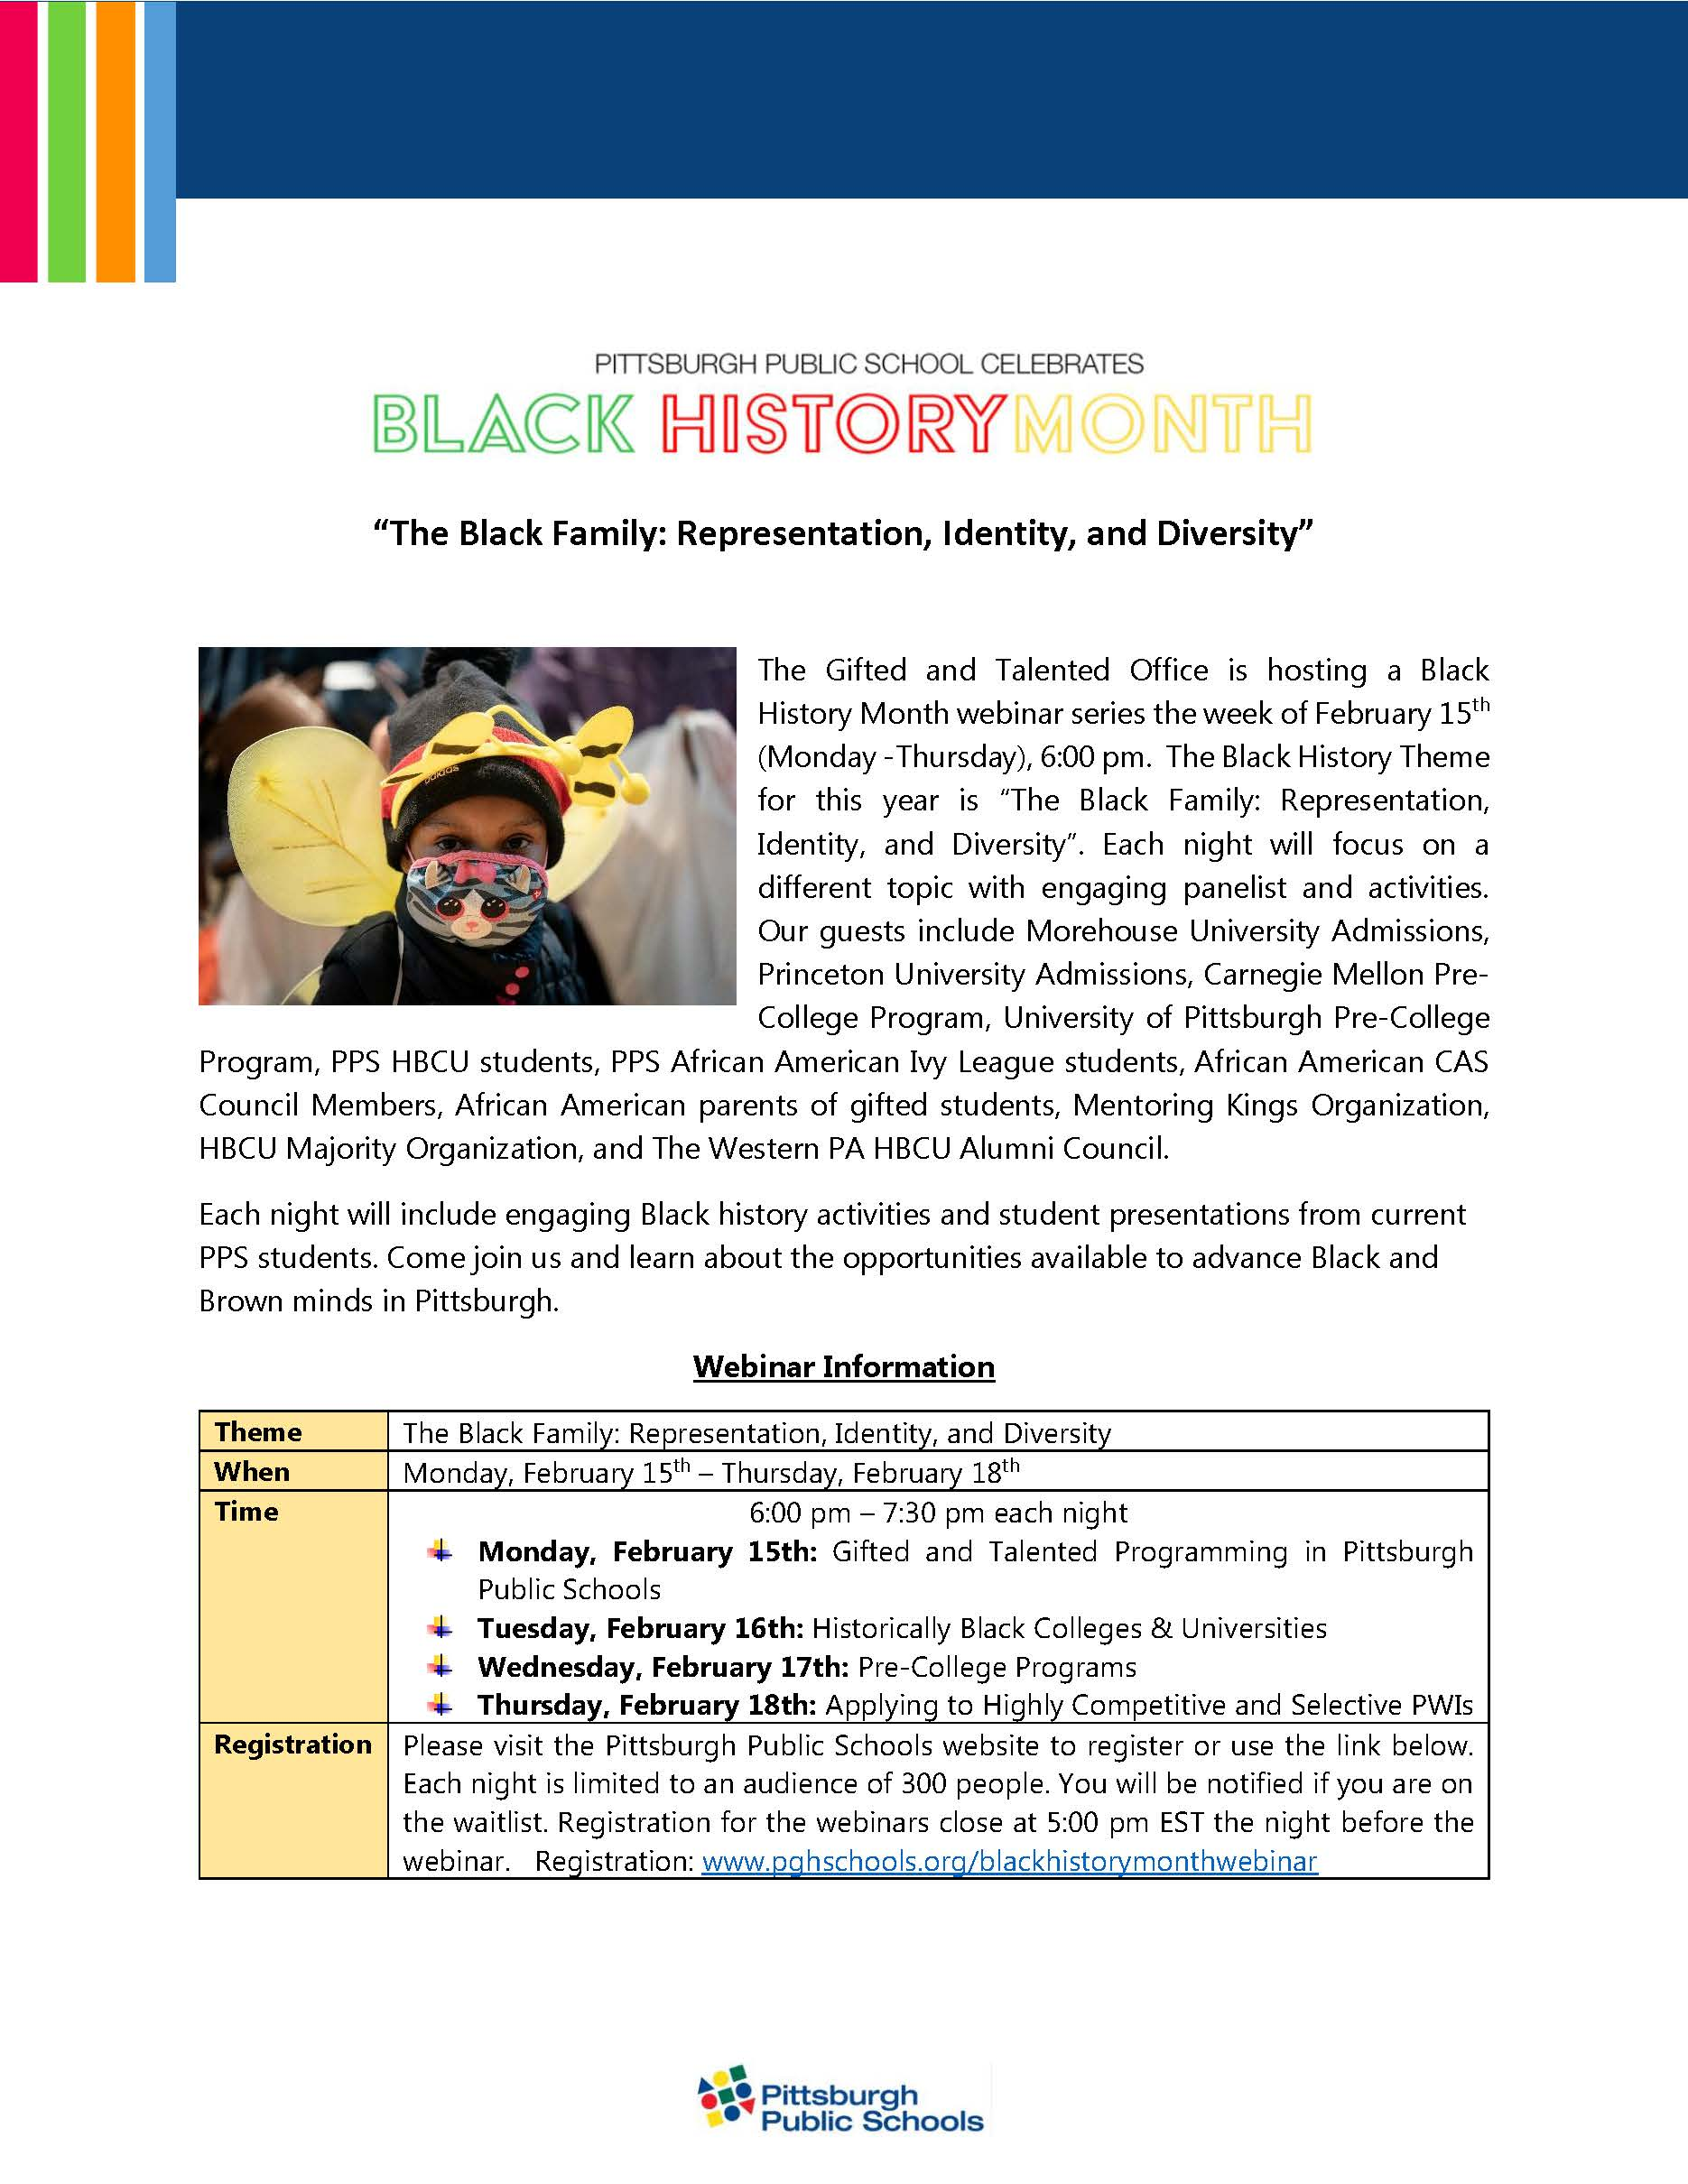 Flyer for webinar series The Black Family: Representation, Identity and Diversity on February 15 to 18.